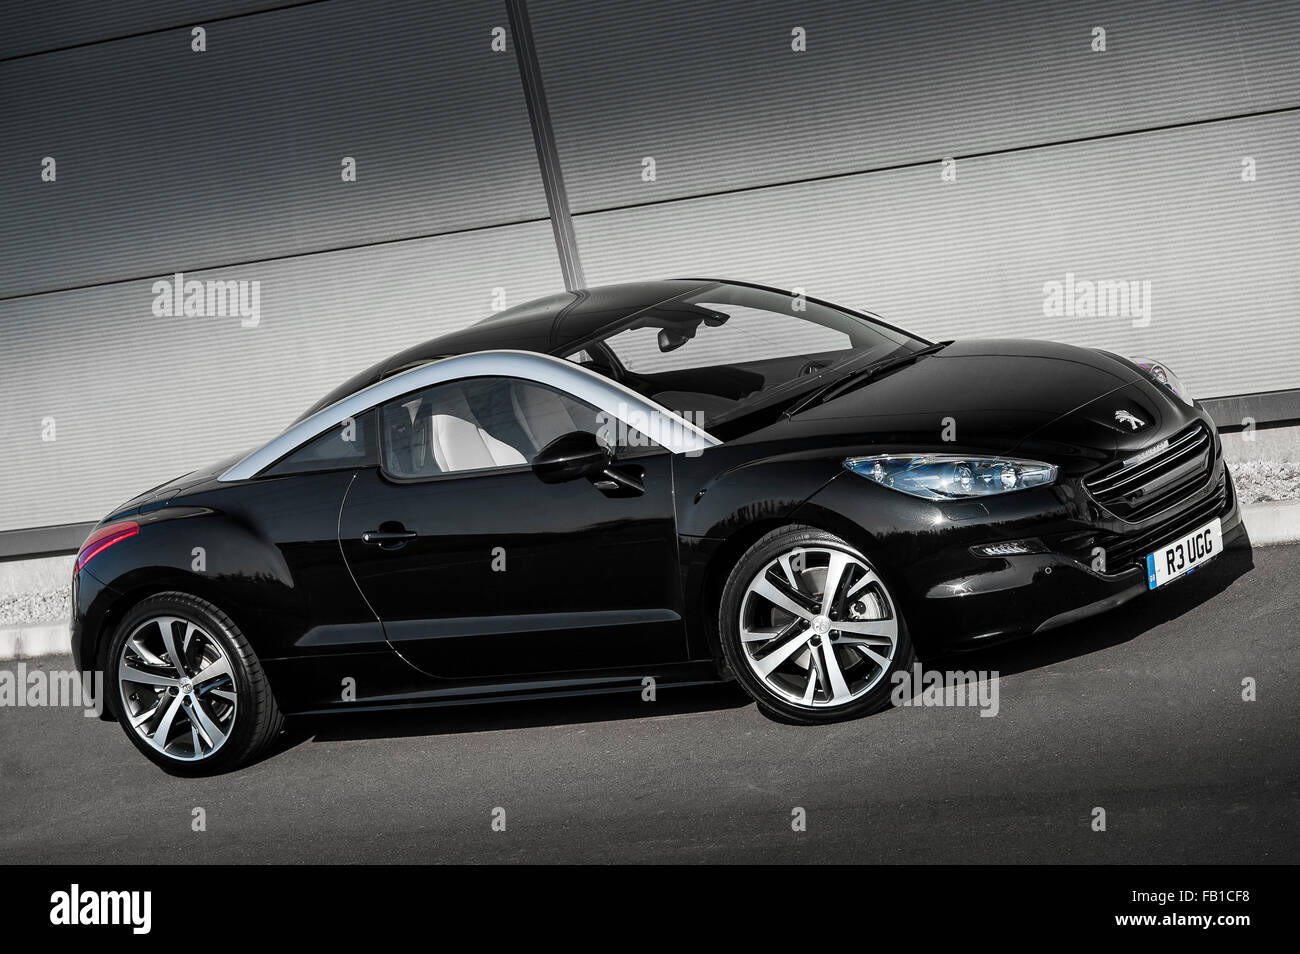 black peugeot rcz coupe sports car stock photo royalty free image 92844844 alamy. Black Bedroom Furniture Sets. Home Design Ideas